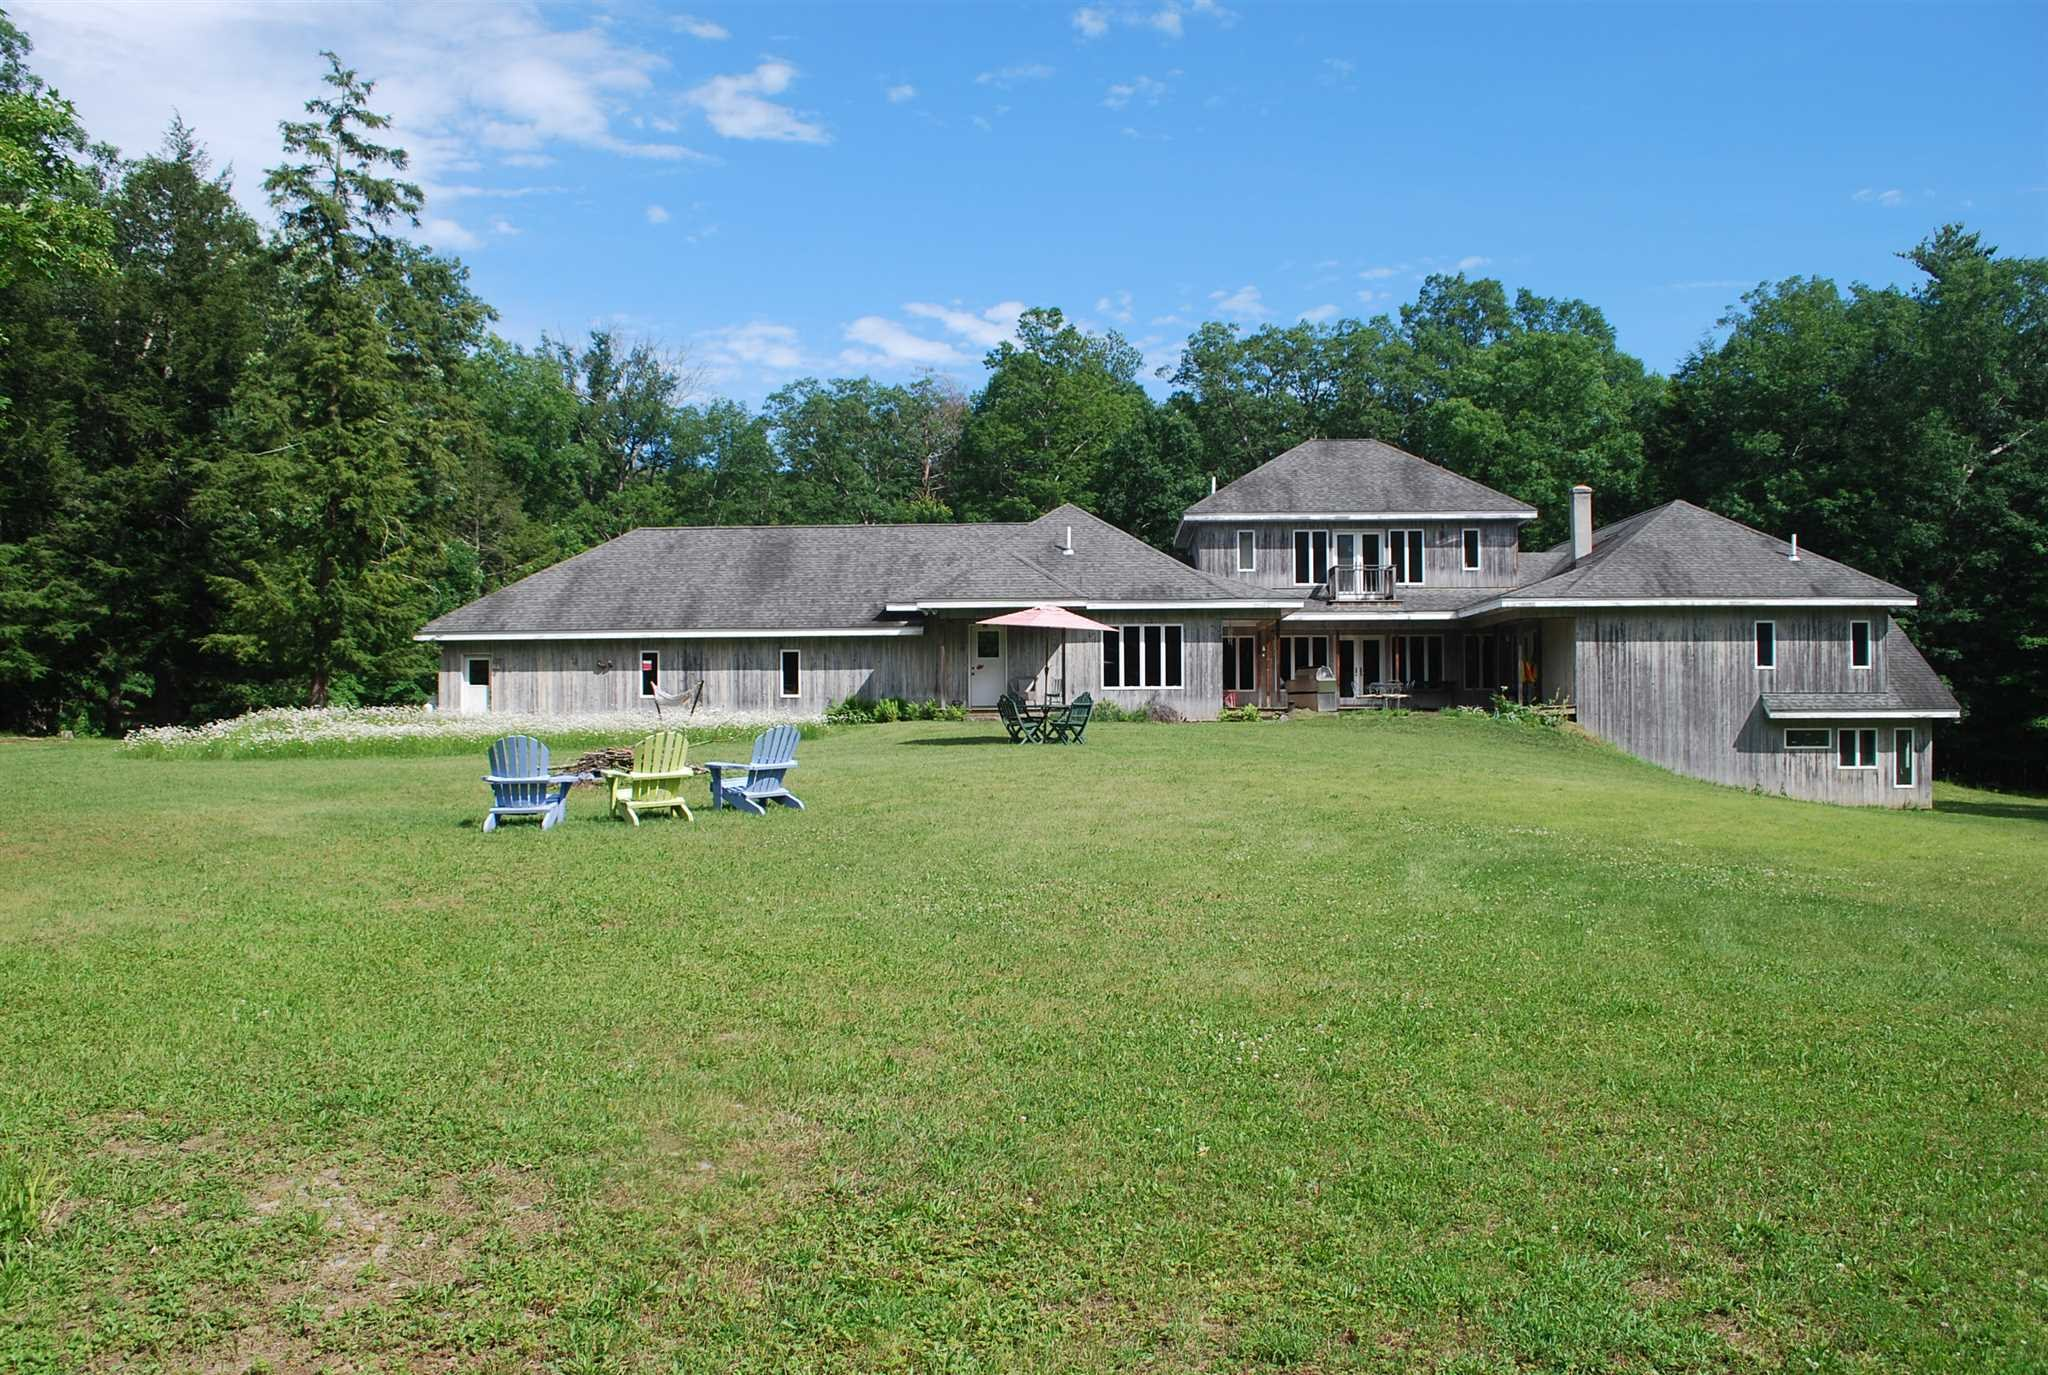 Single Family Home for Sale at 261 ZIPFELDBURG Road 261 ZIPFELDBURG Road Rhinebeck, New York 12572 United States